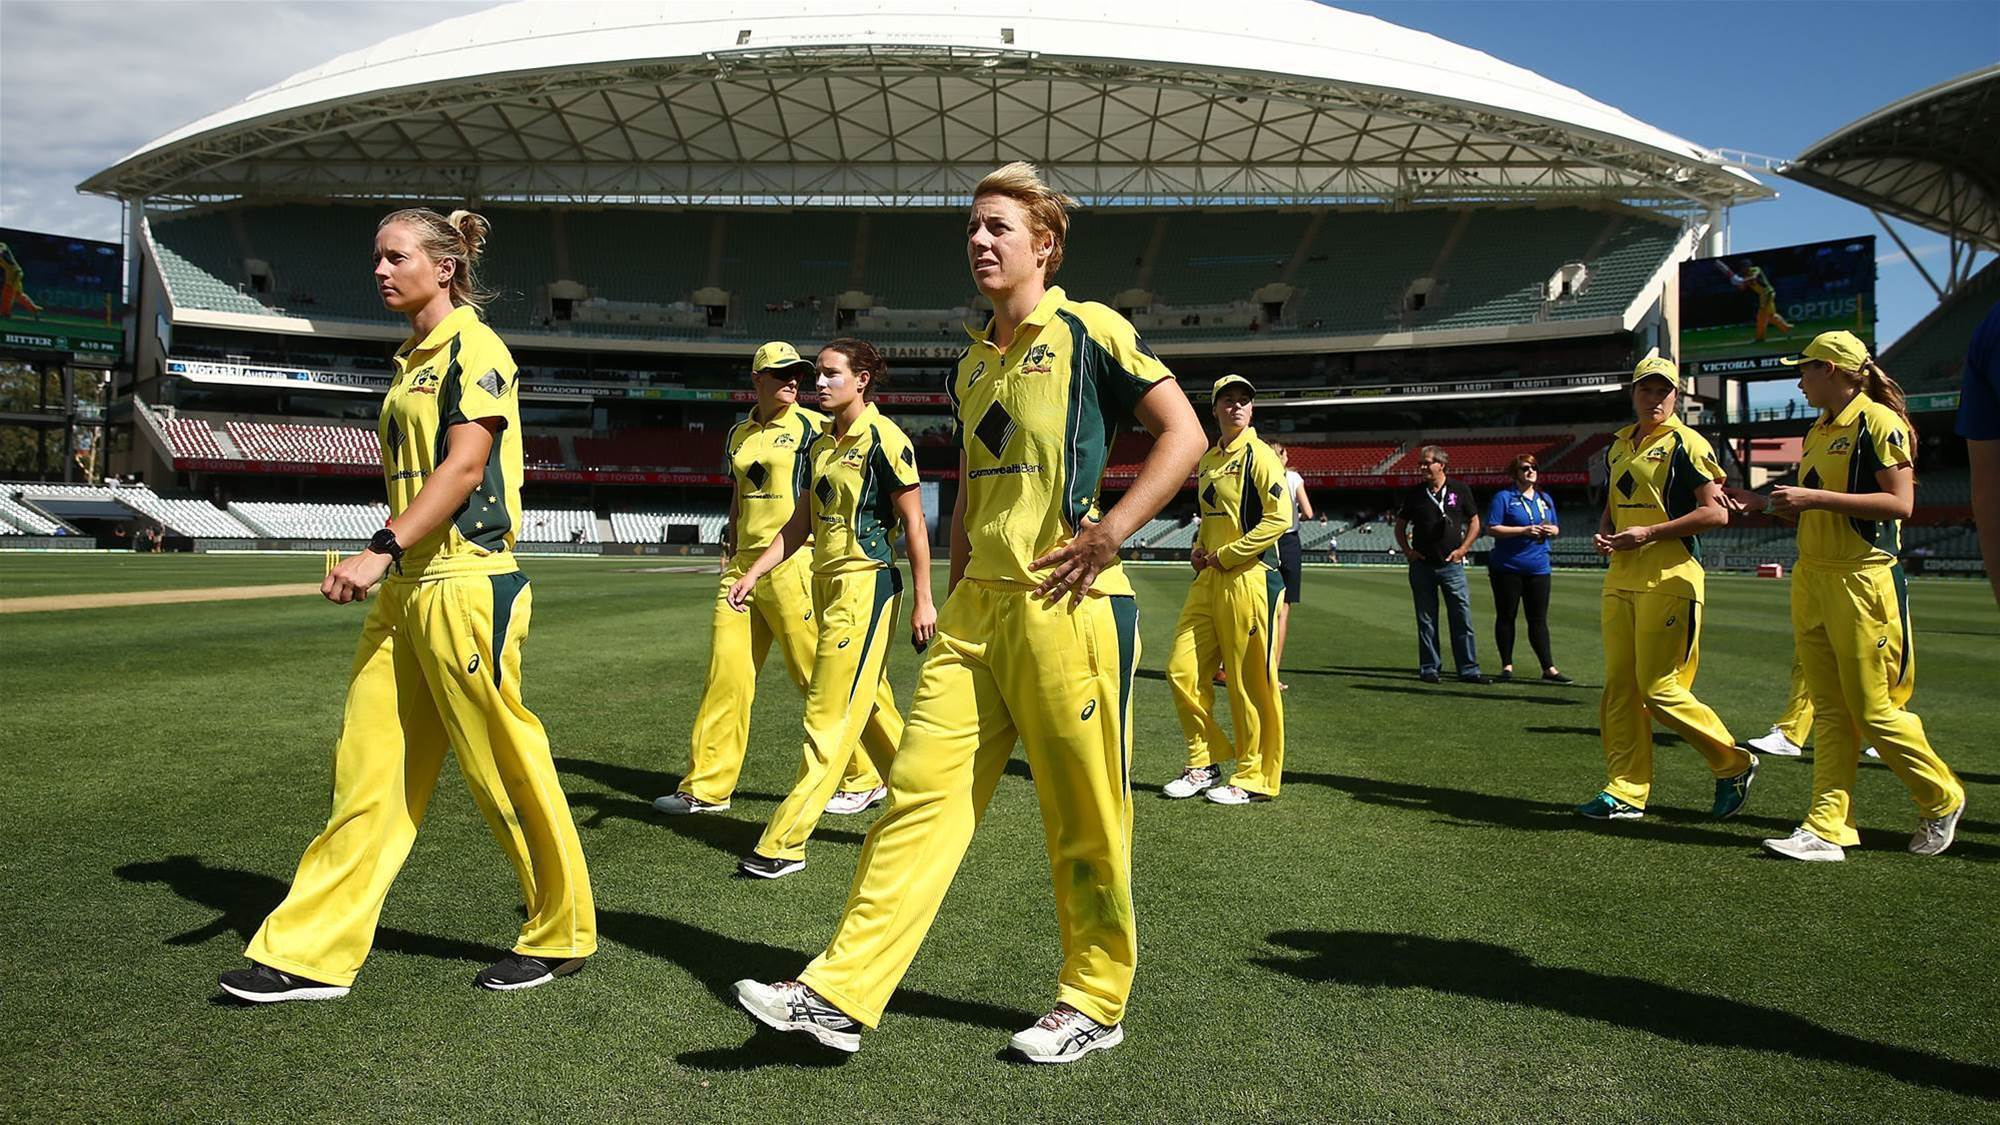 Australia suffer loss in final group match